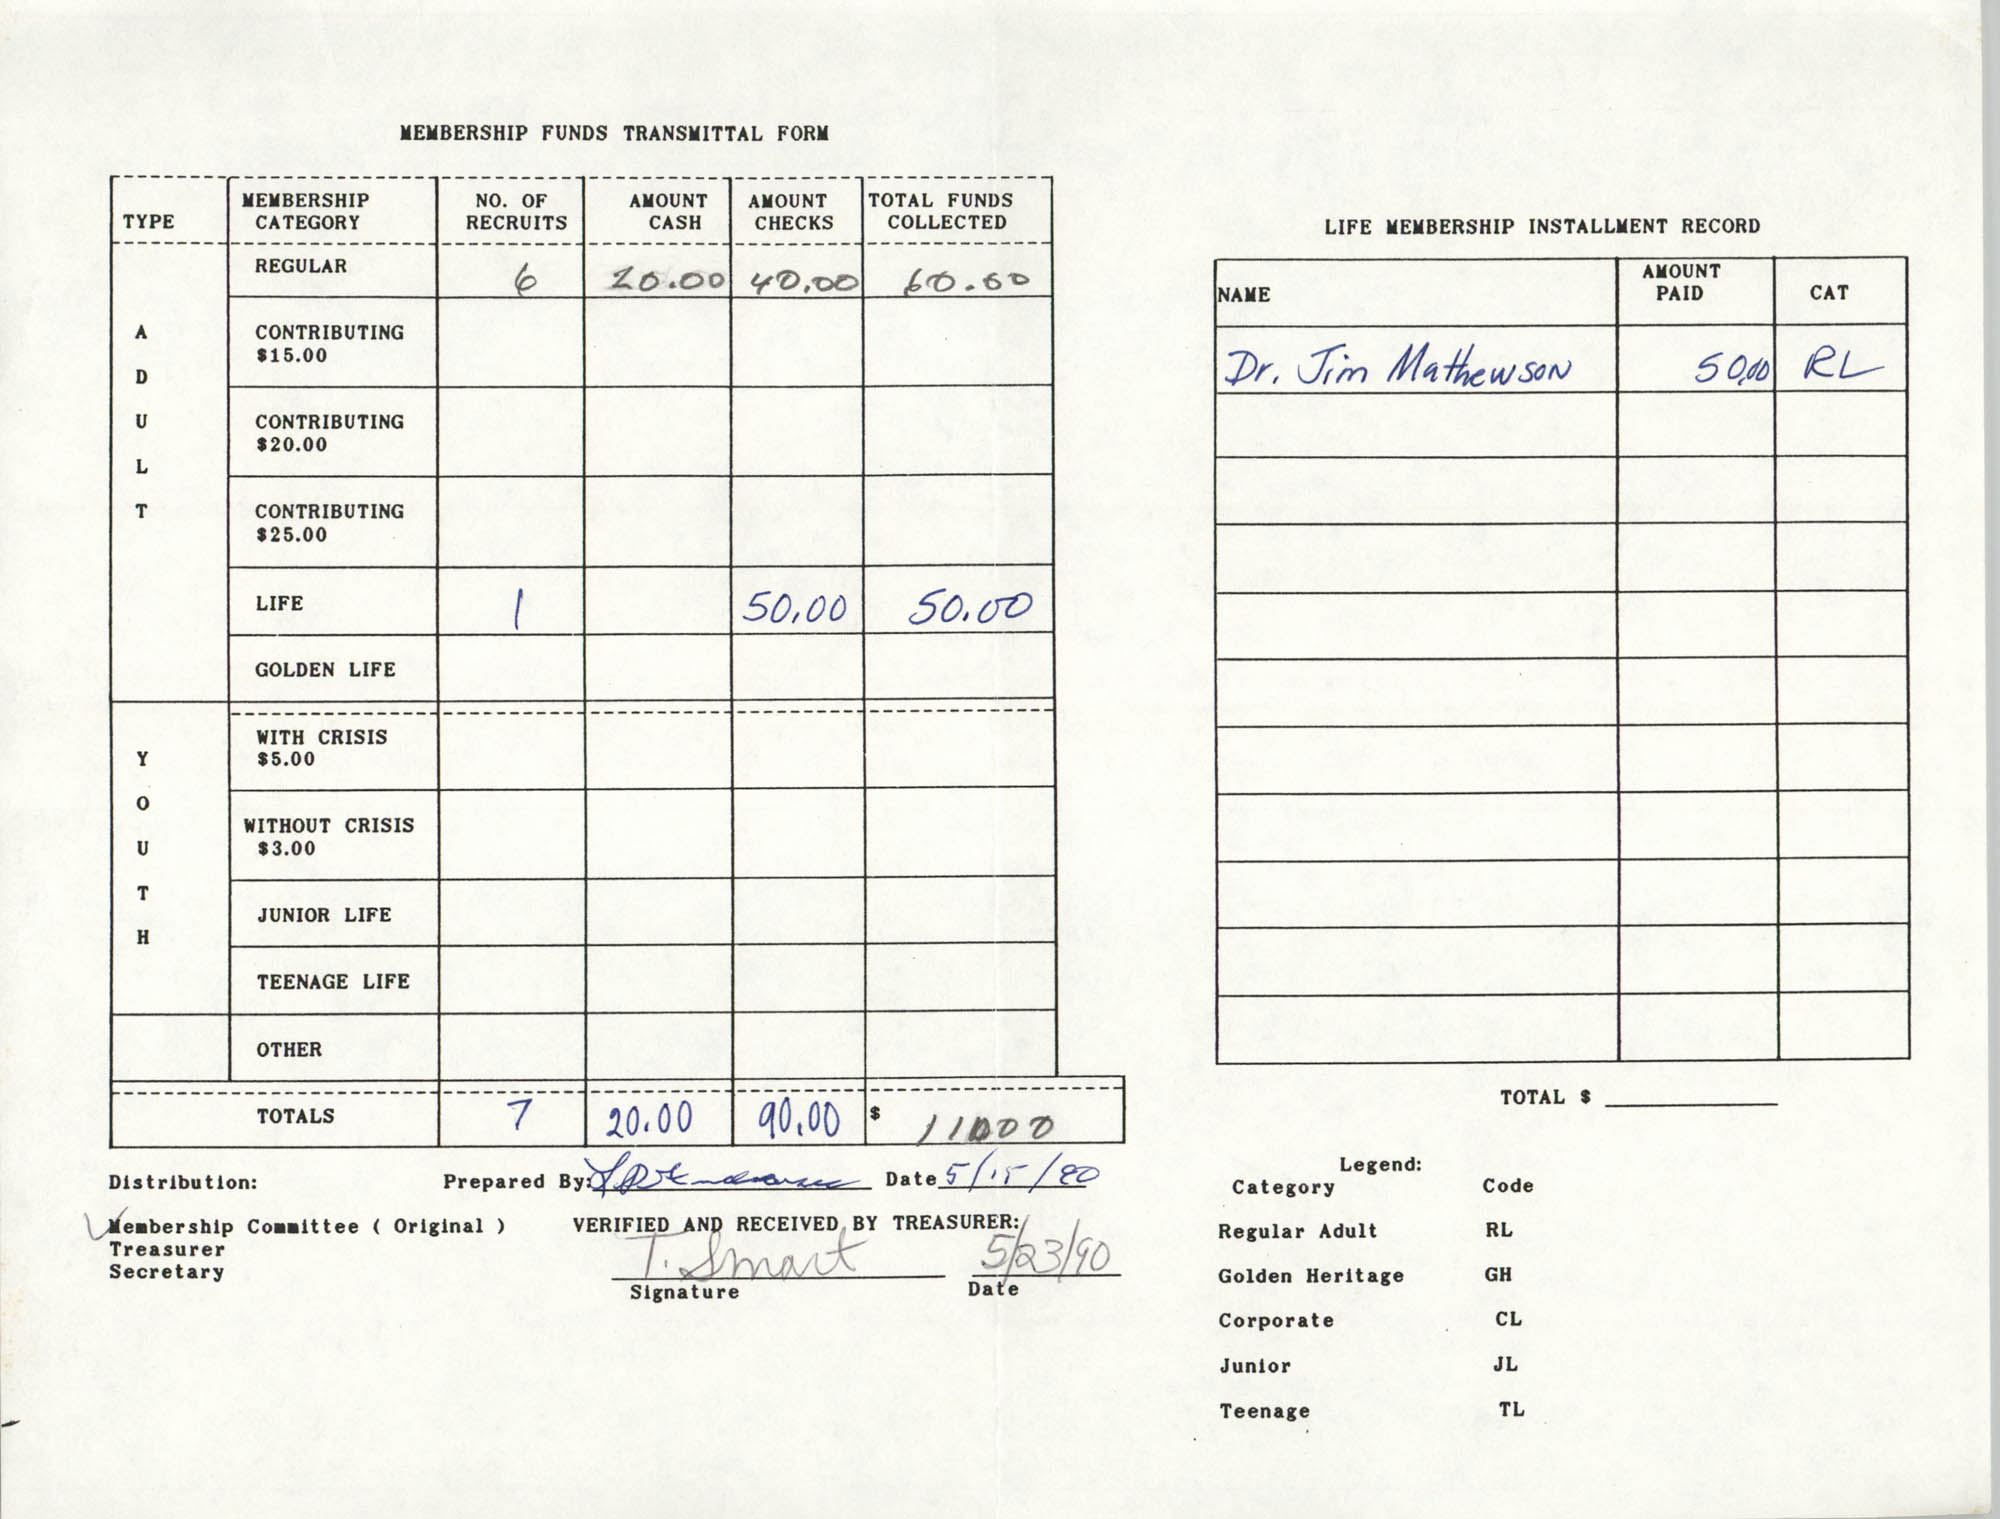 Charleston Branch of the NAACP Funds Transmittal Forms, May 1990, Page 4